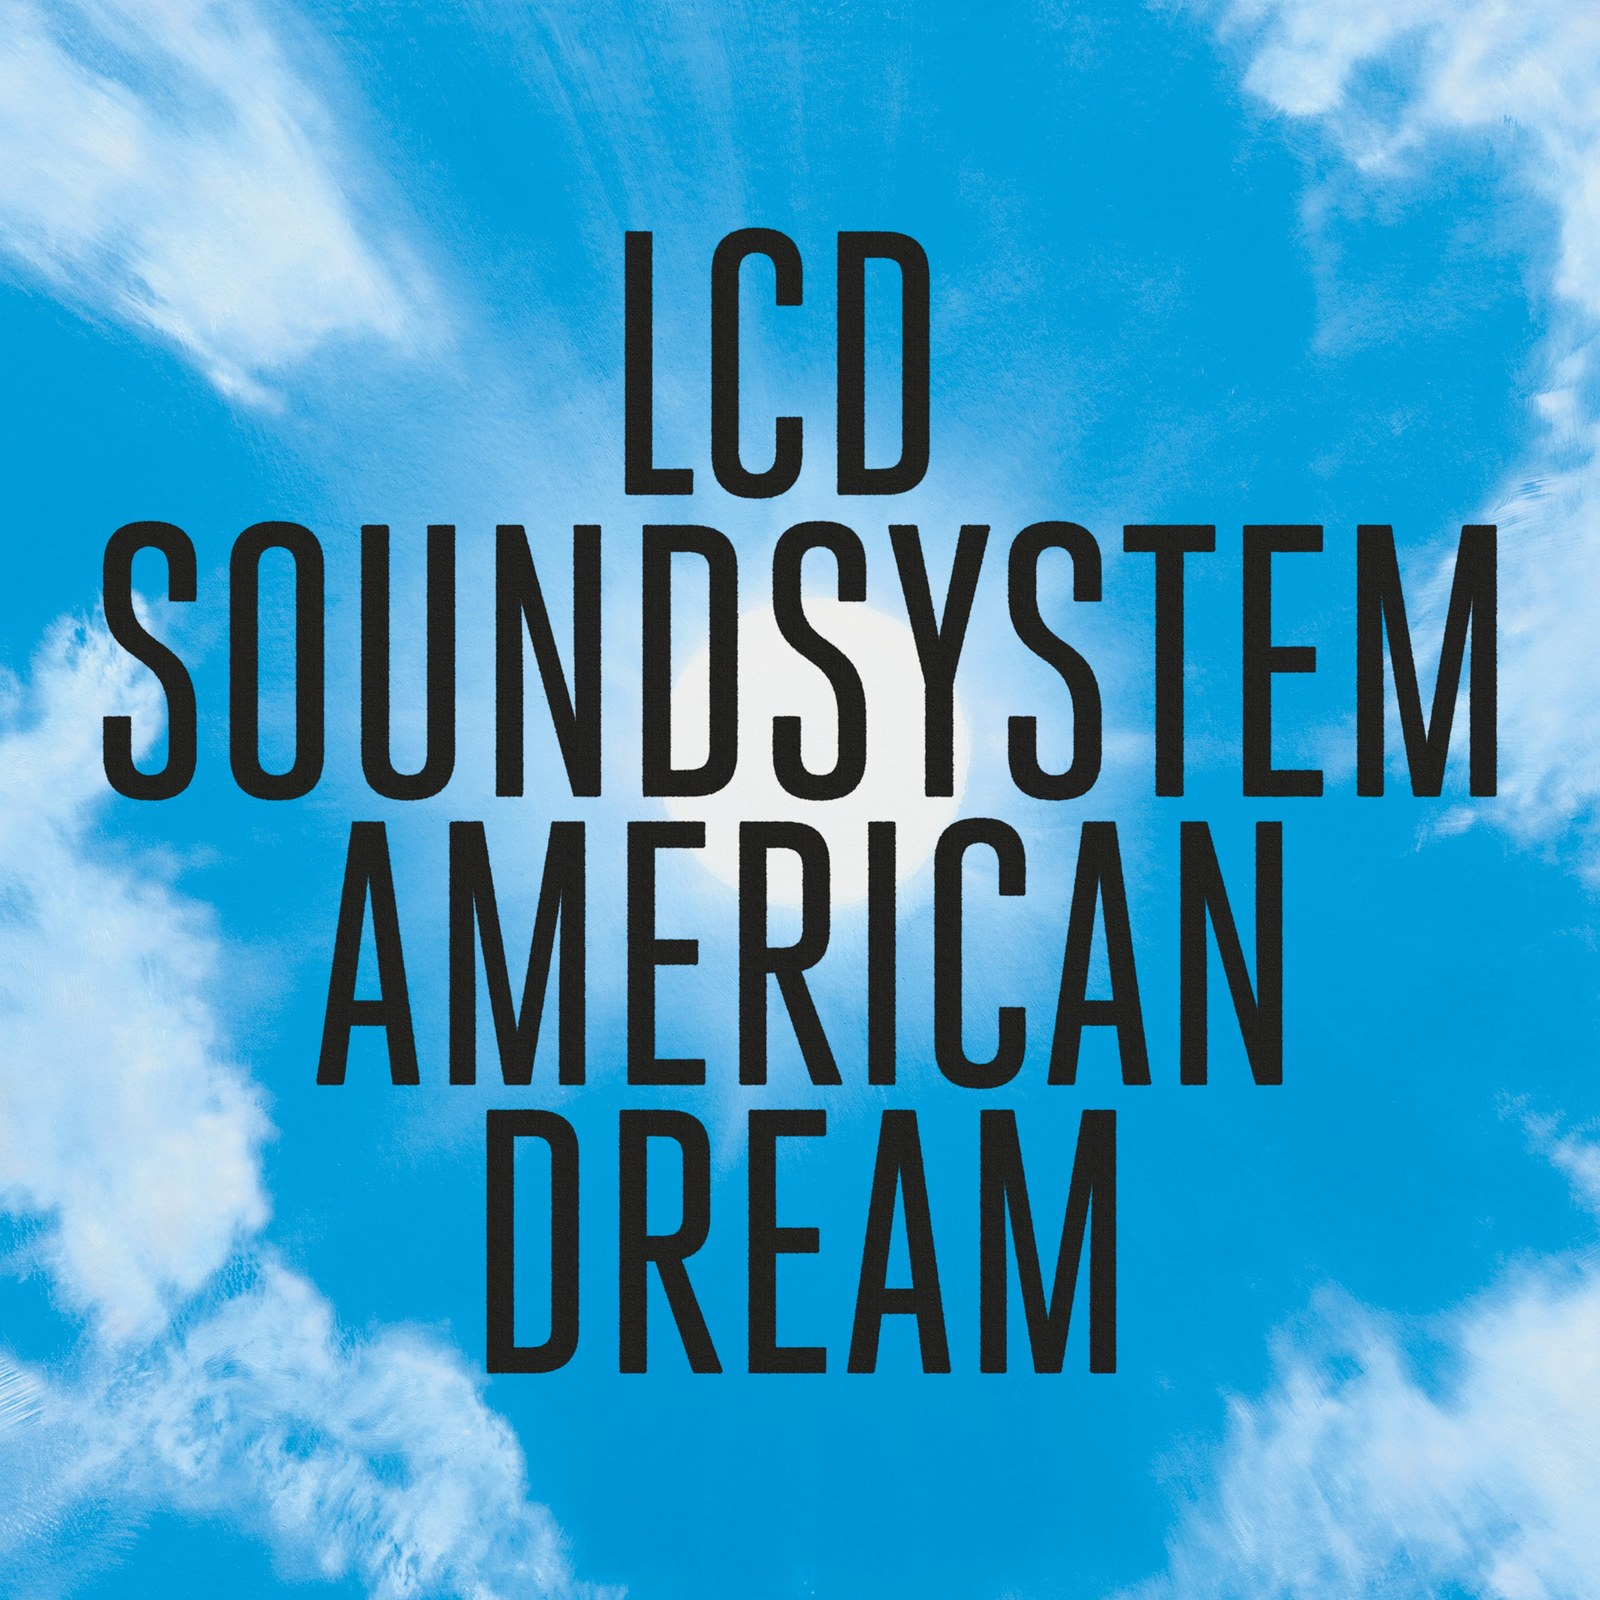 American Dream by LCD Soundsystem image